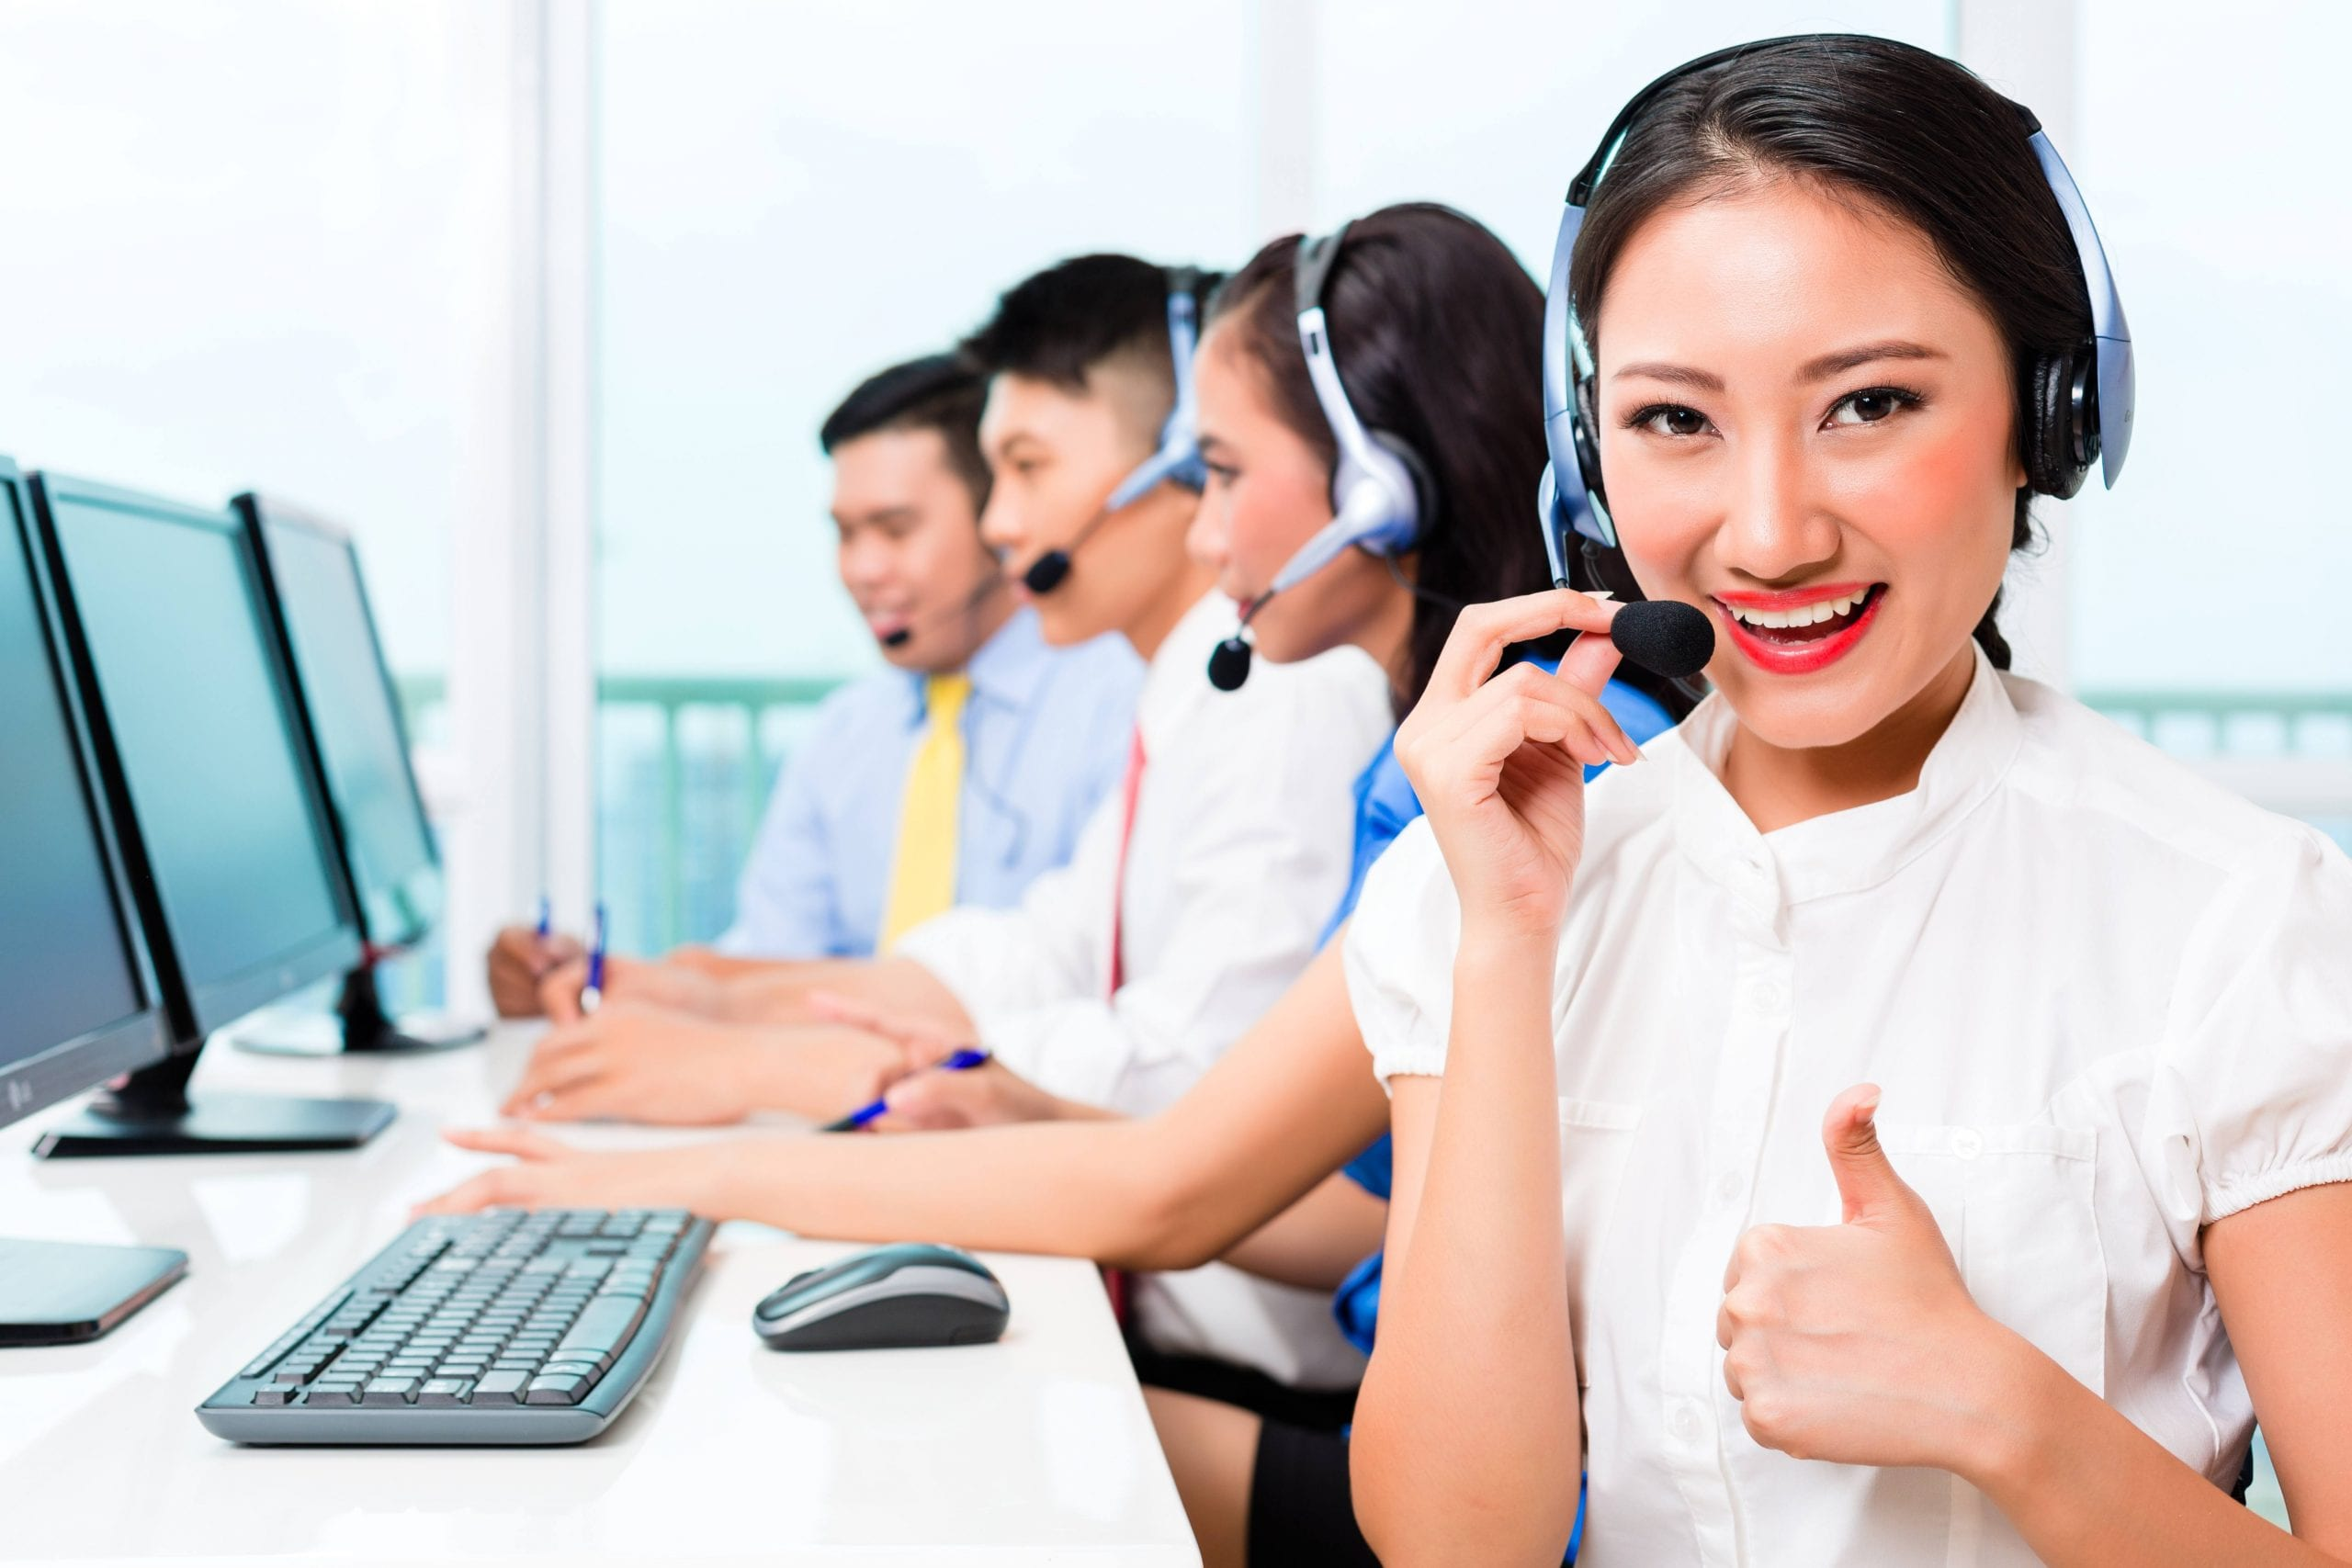 How To Gain Greater Insight Into Call Center Agent